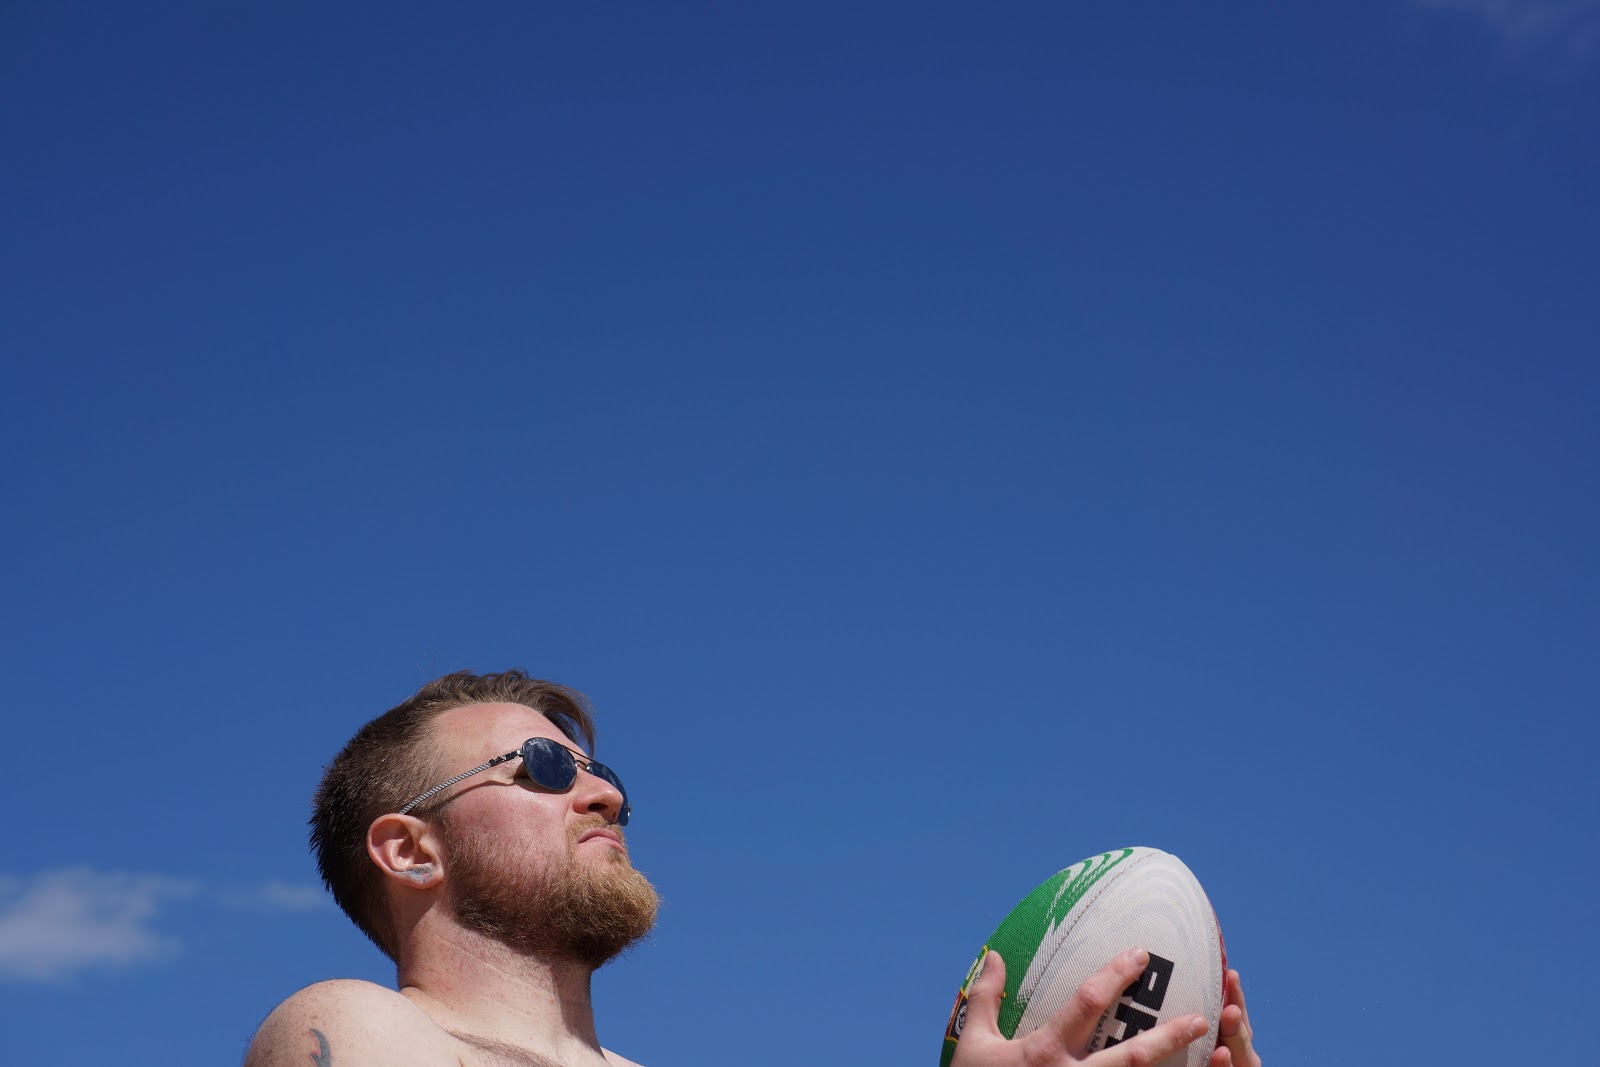 man throwing a rugby ball